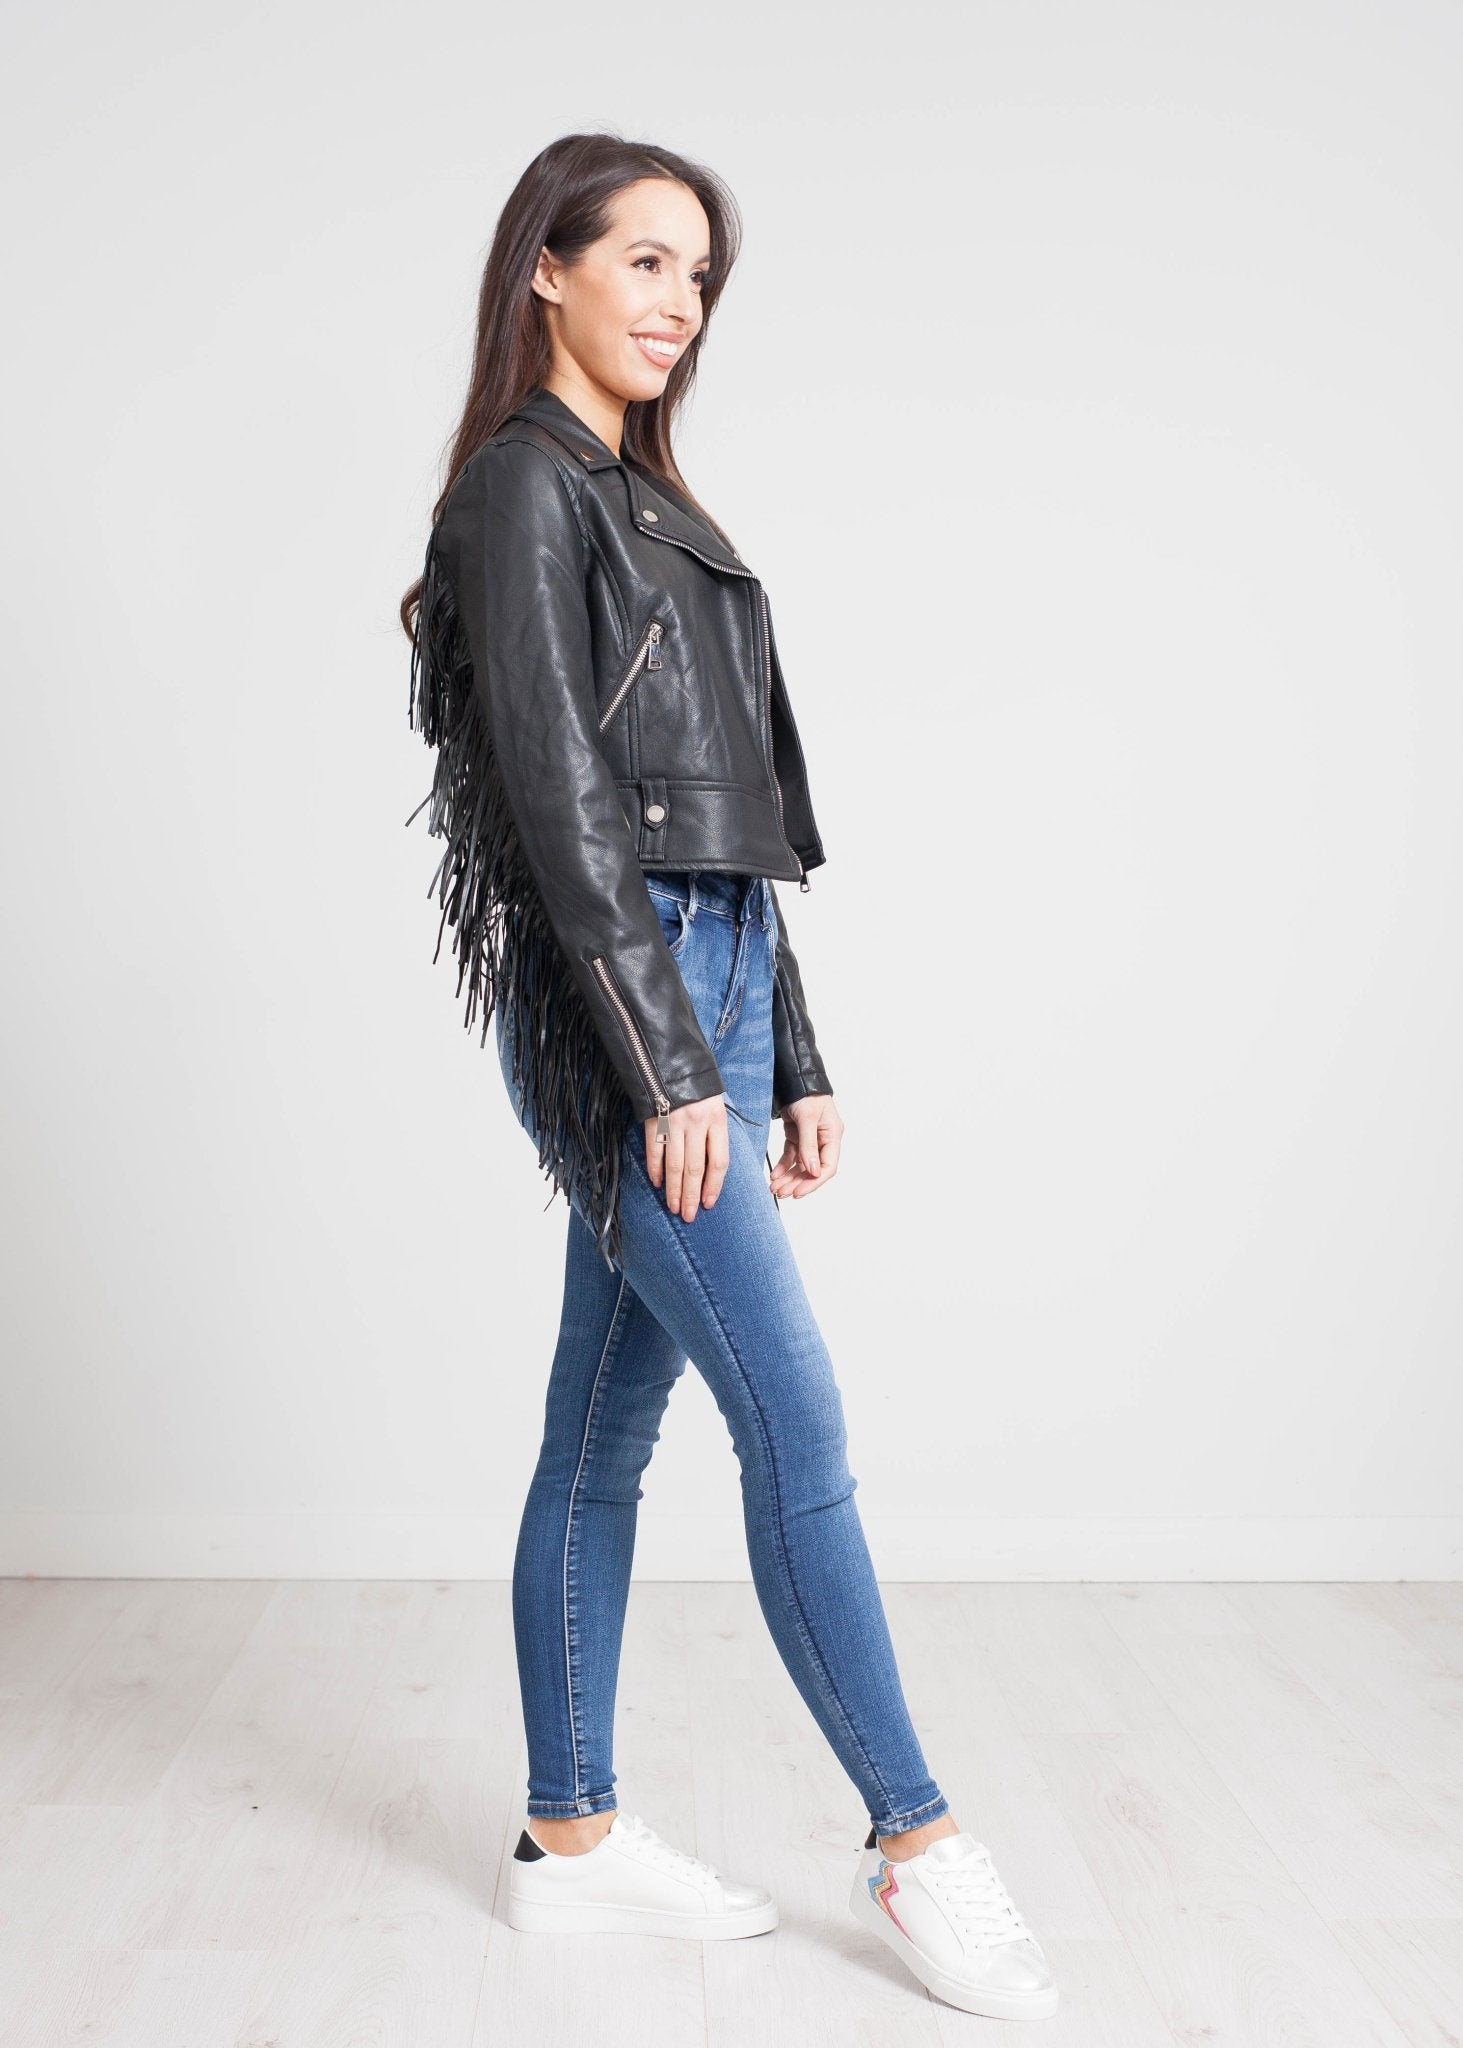 Caitlyn Fringed Leather Jacket In Black - The Walk in Wardrobe